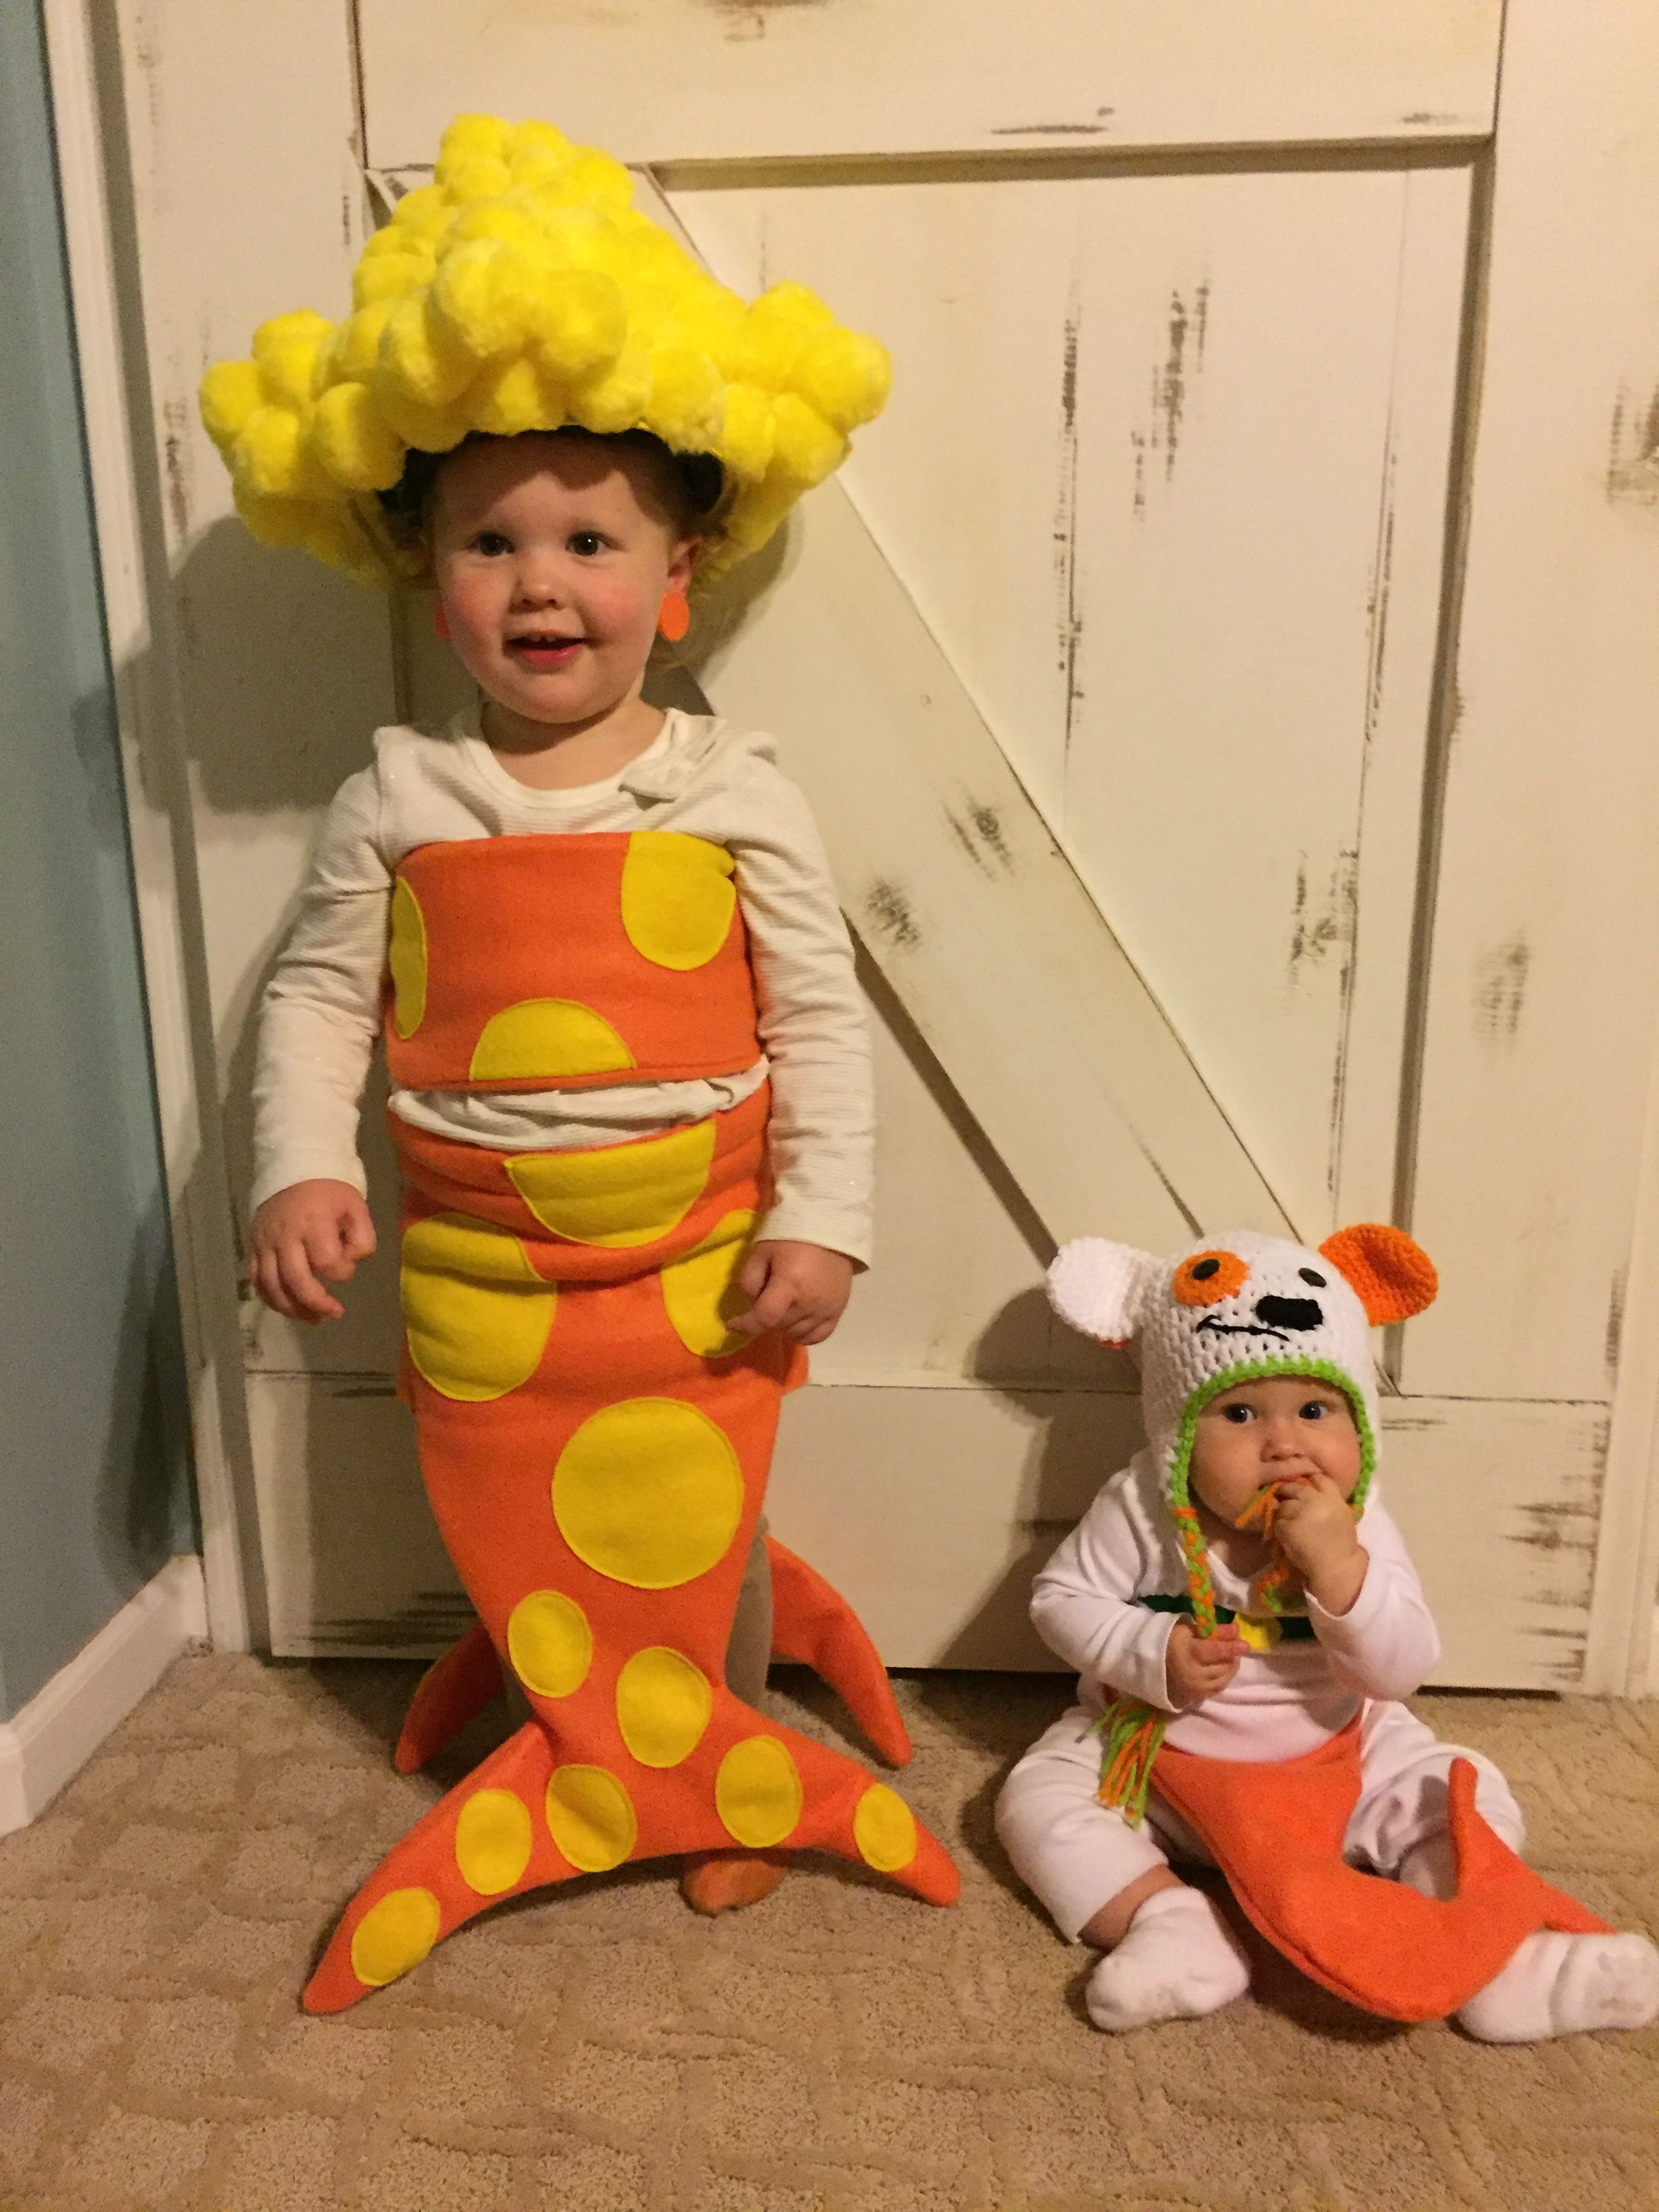 Bubble Guppies Costume : bubble, guppies, costume, Bubble, Guppy,, Puppy, Halloween, Costume, Costumes,, Guppies, Costume,, Toddler, Costumes